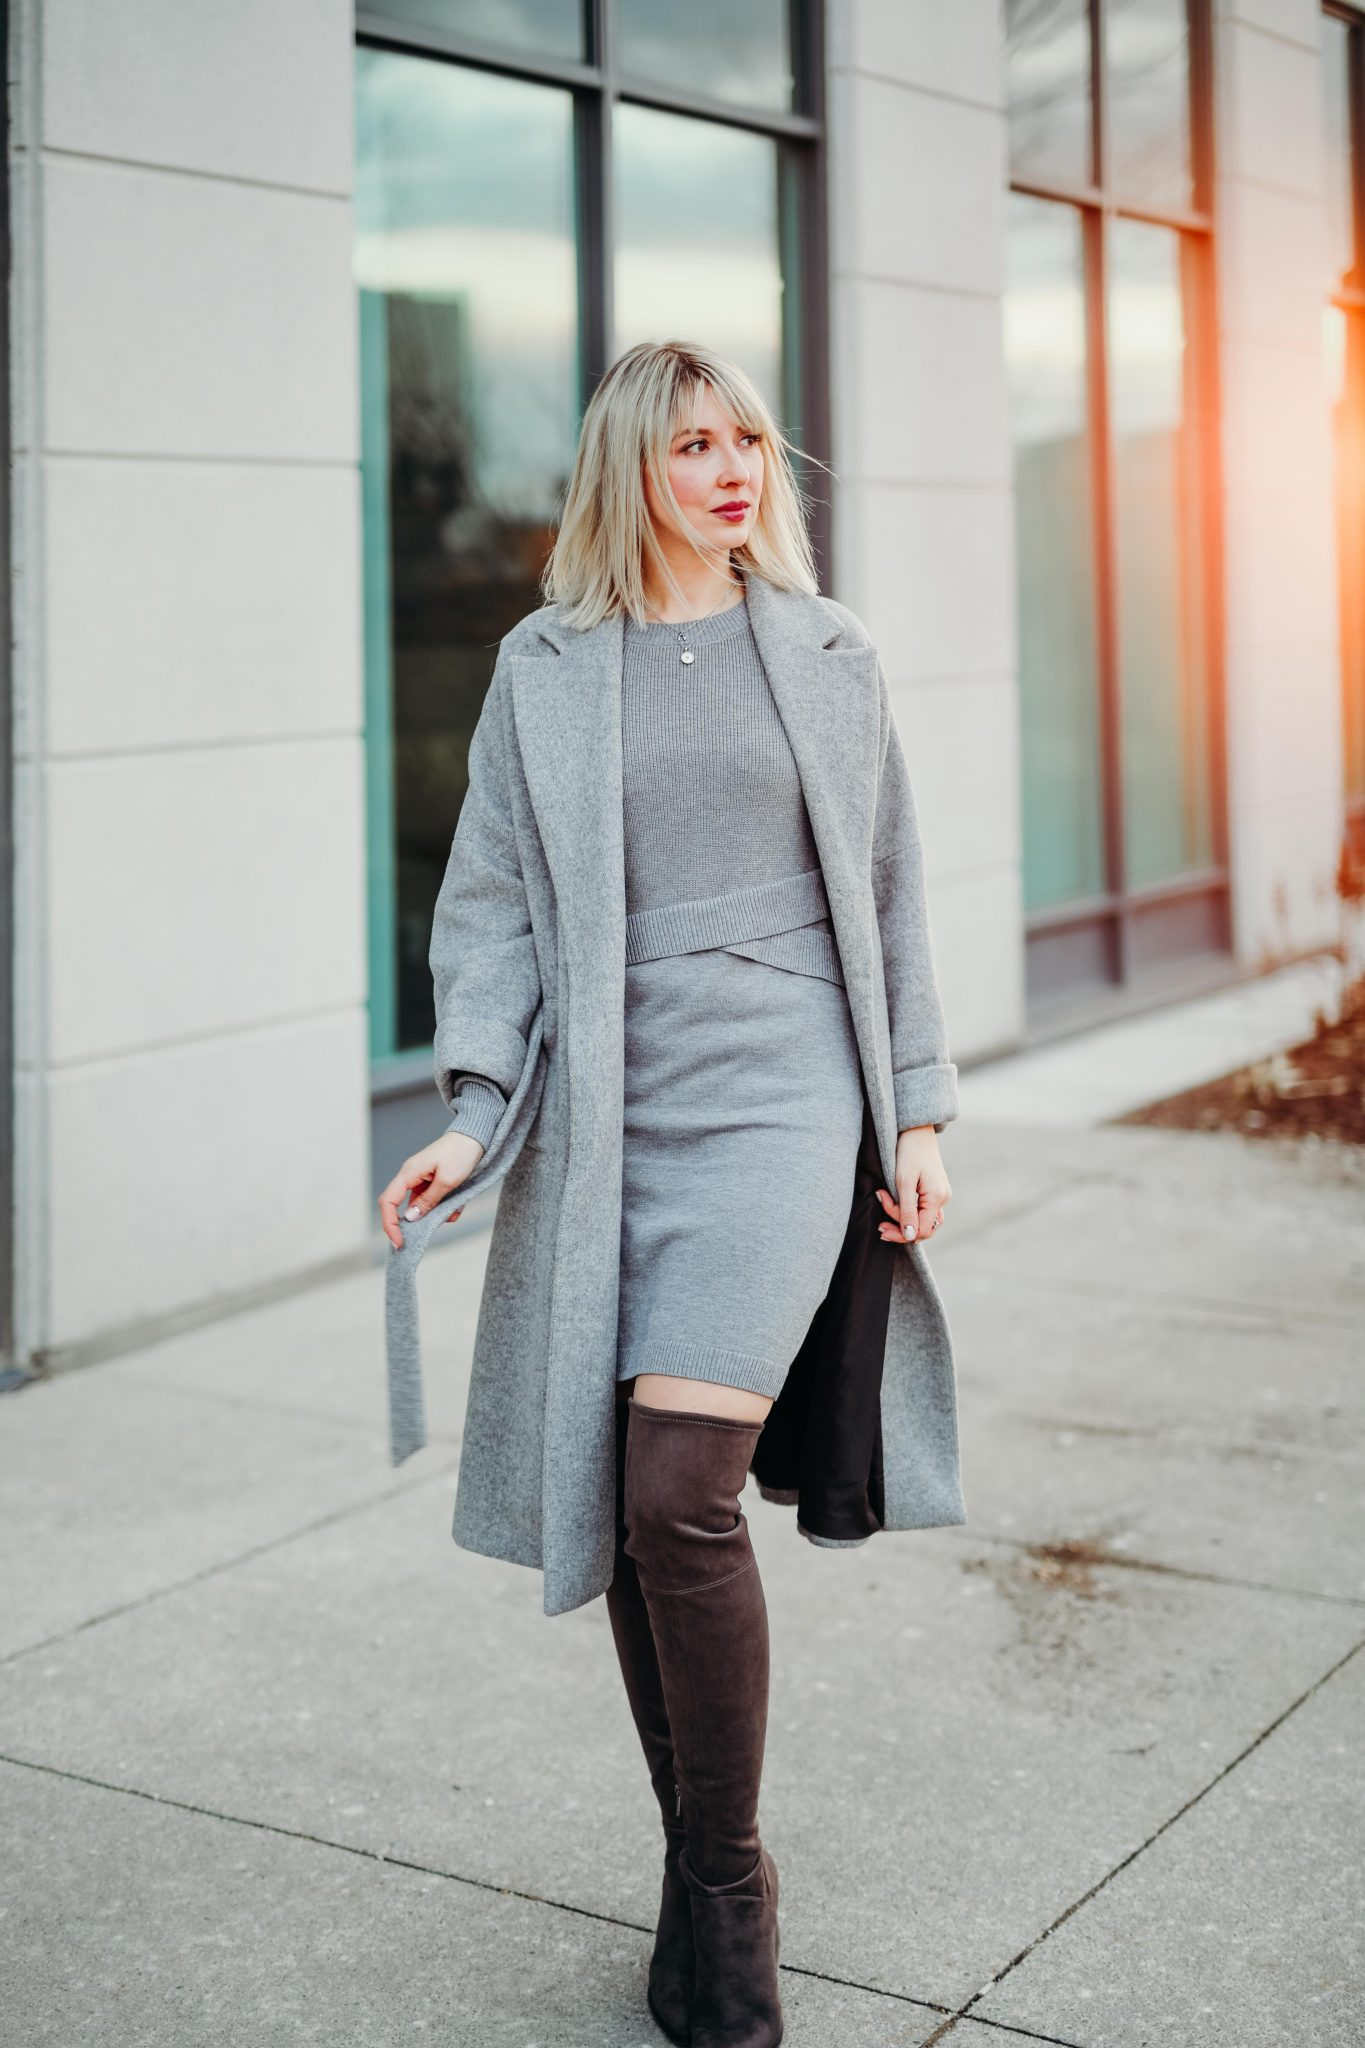 grey knit dress & long coat (4 of 10)